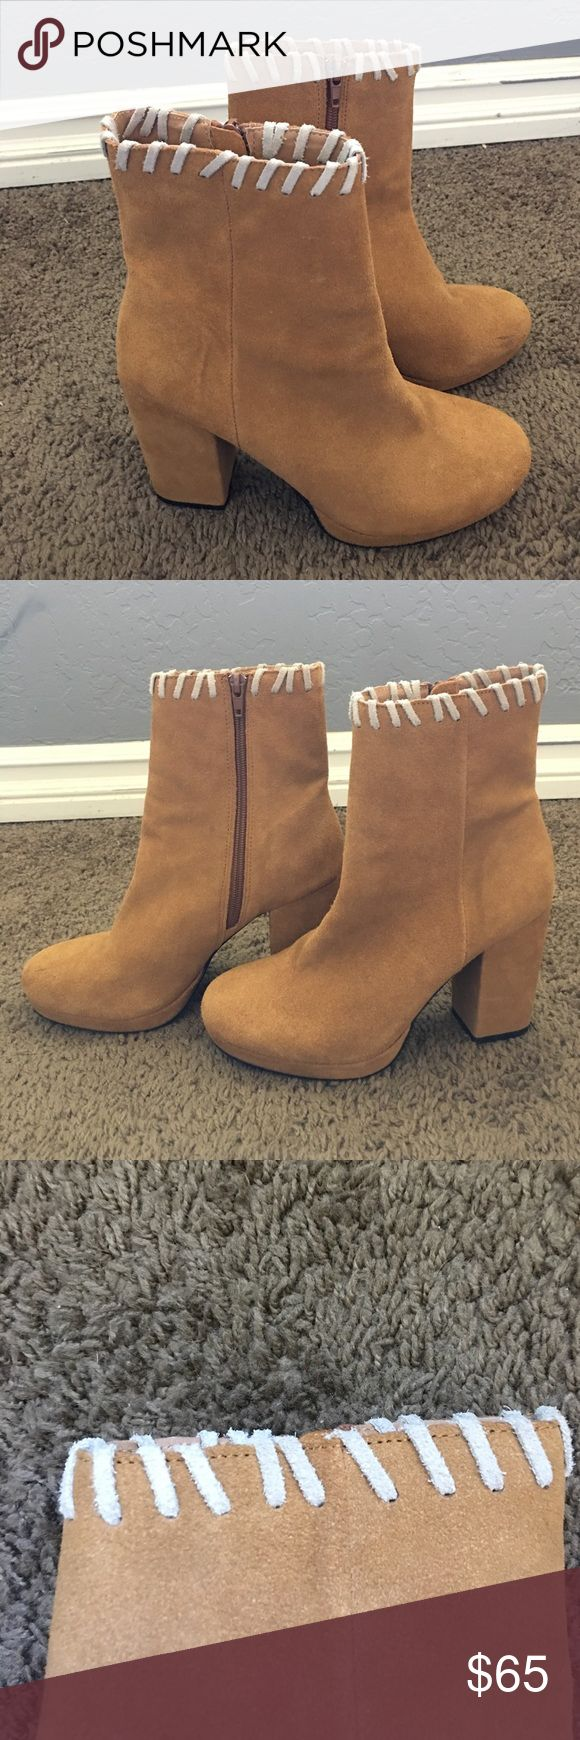 Urban outfitter tan boots/booties Worn once size 8 tan urban outfitter boots Urban Outfitters Shoes Ankle Boots & Booties